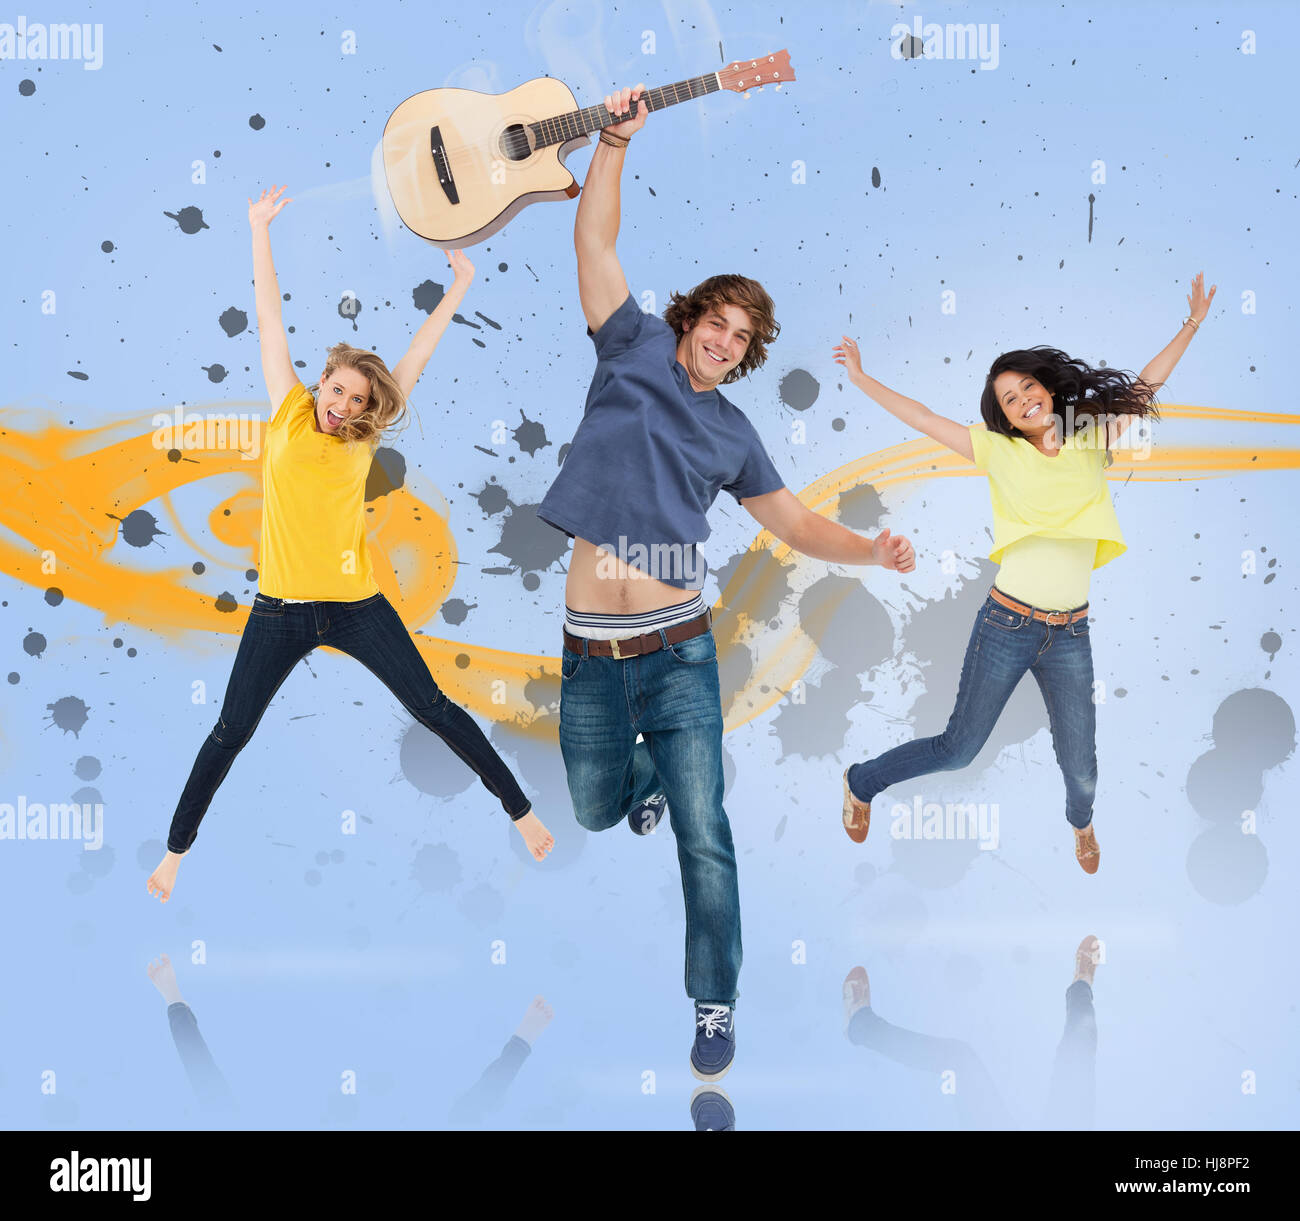 young man with guitar and two girls jumping for joy with yellow